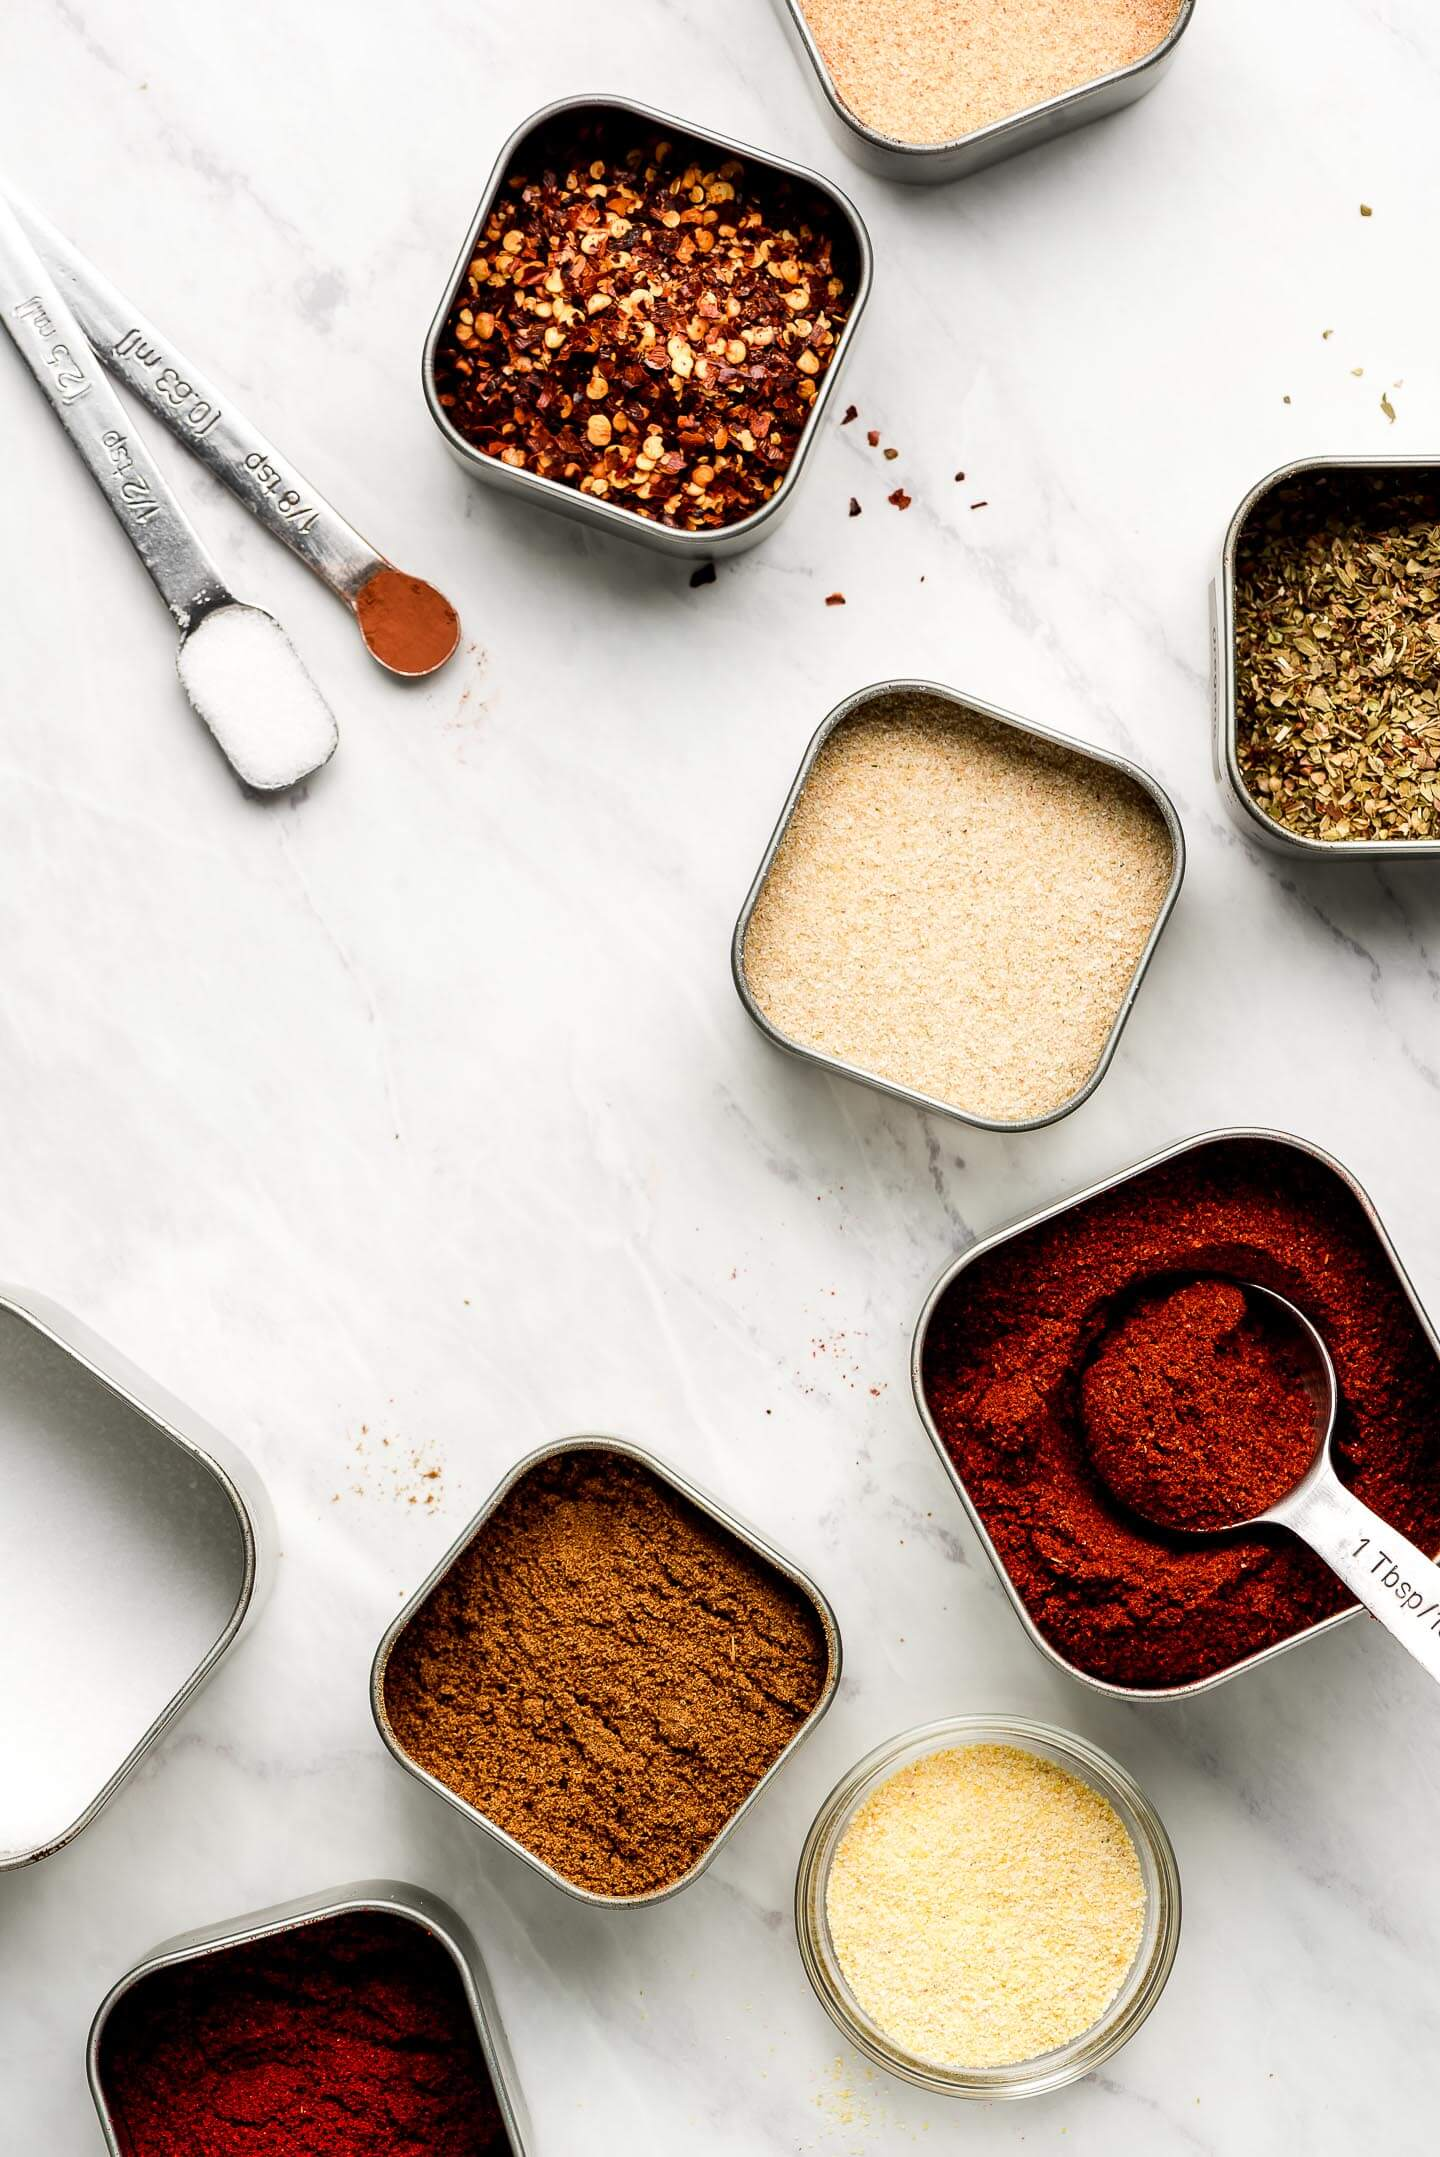 Various tins of spices and measuring spoons on a marble surface.